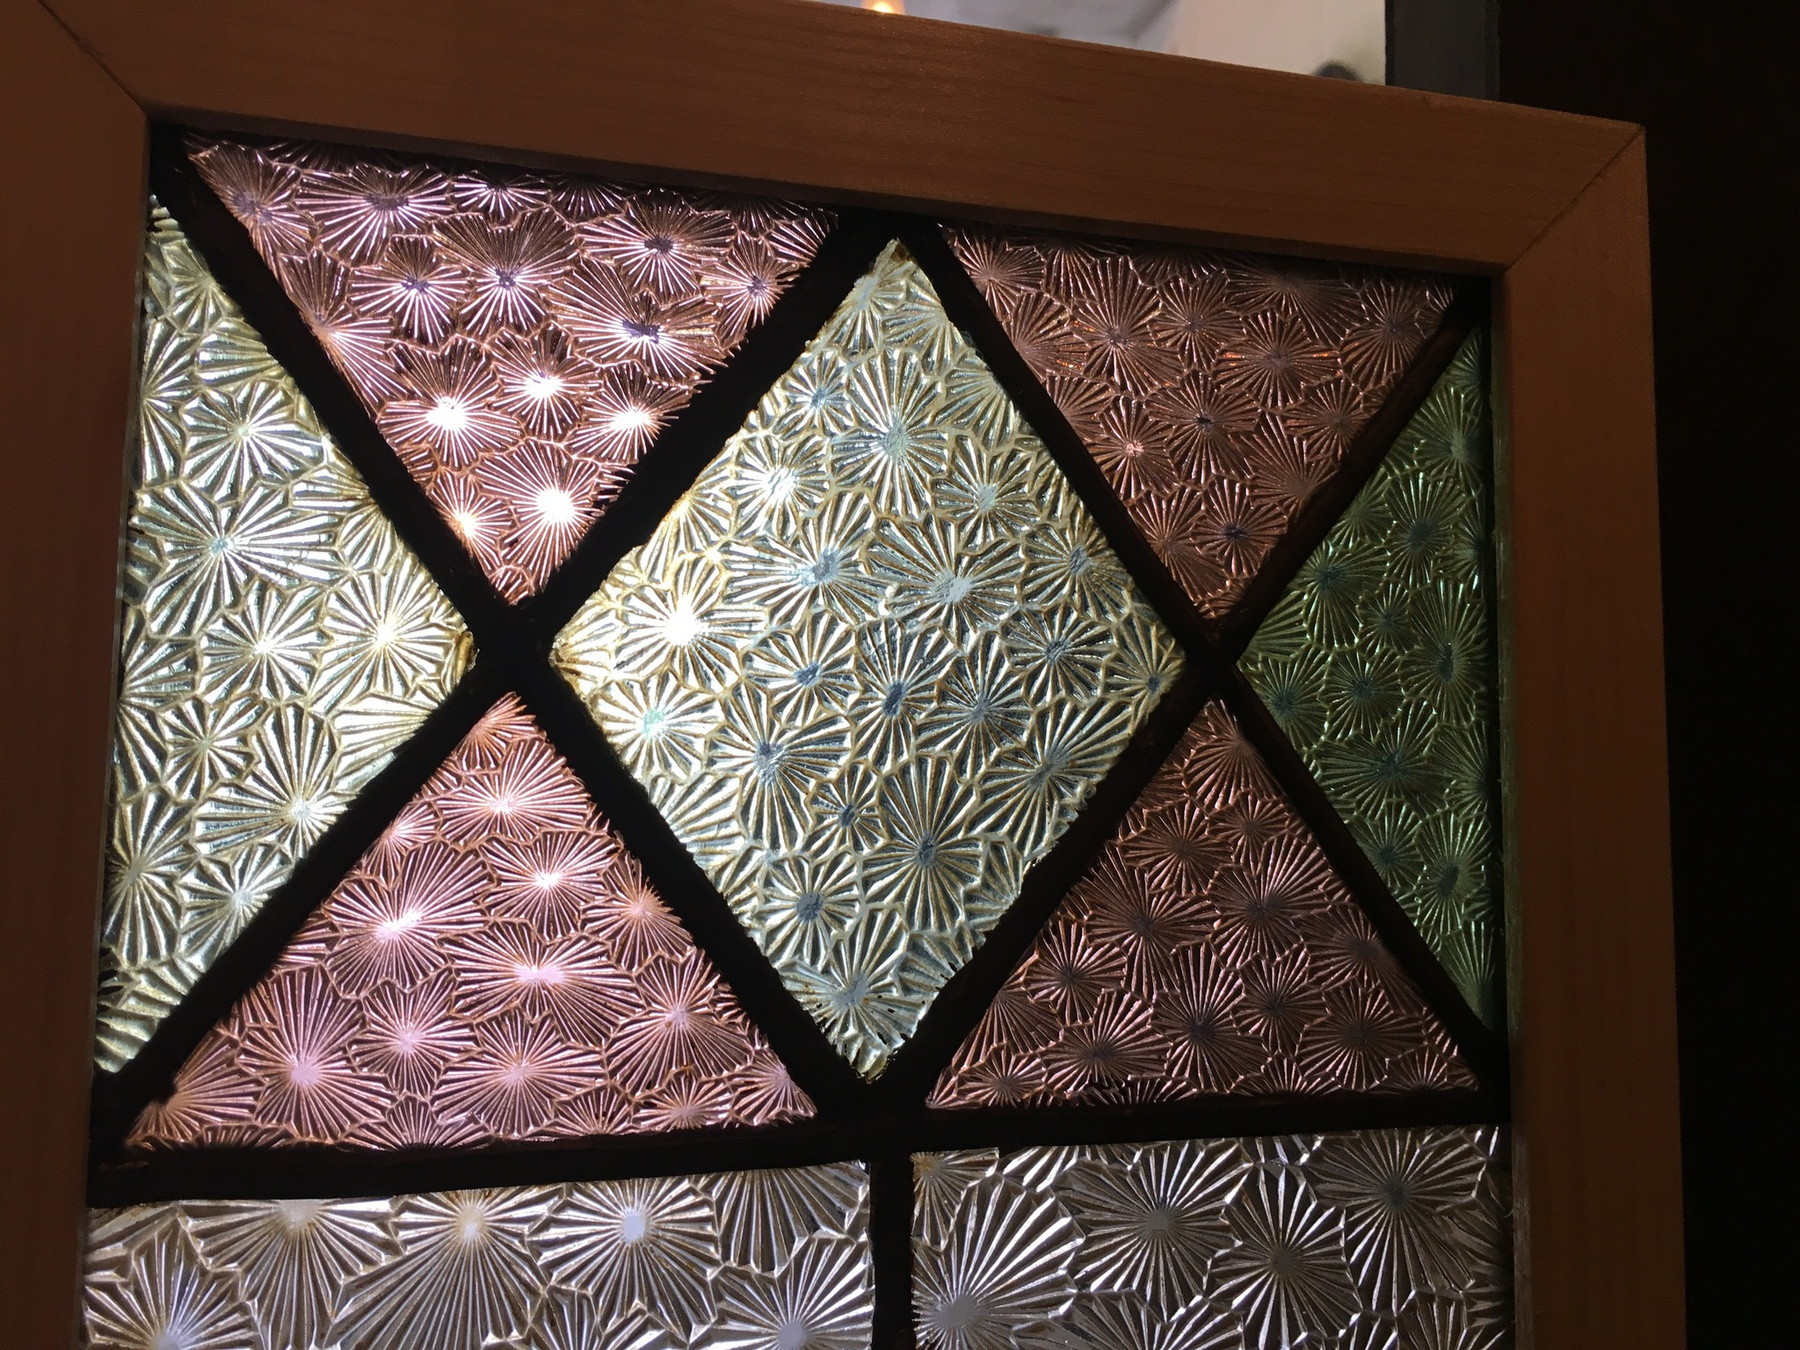 stained190830f_02.JPG